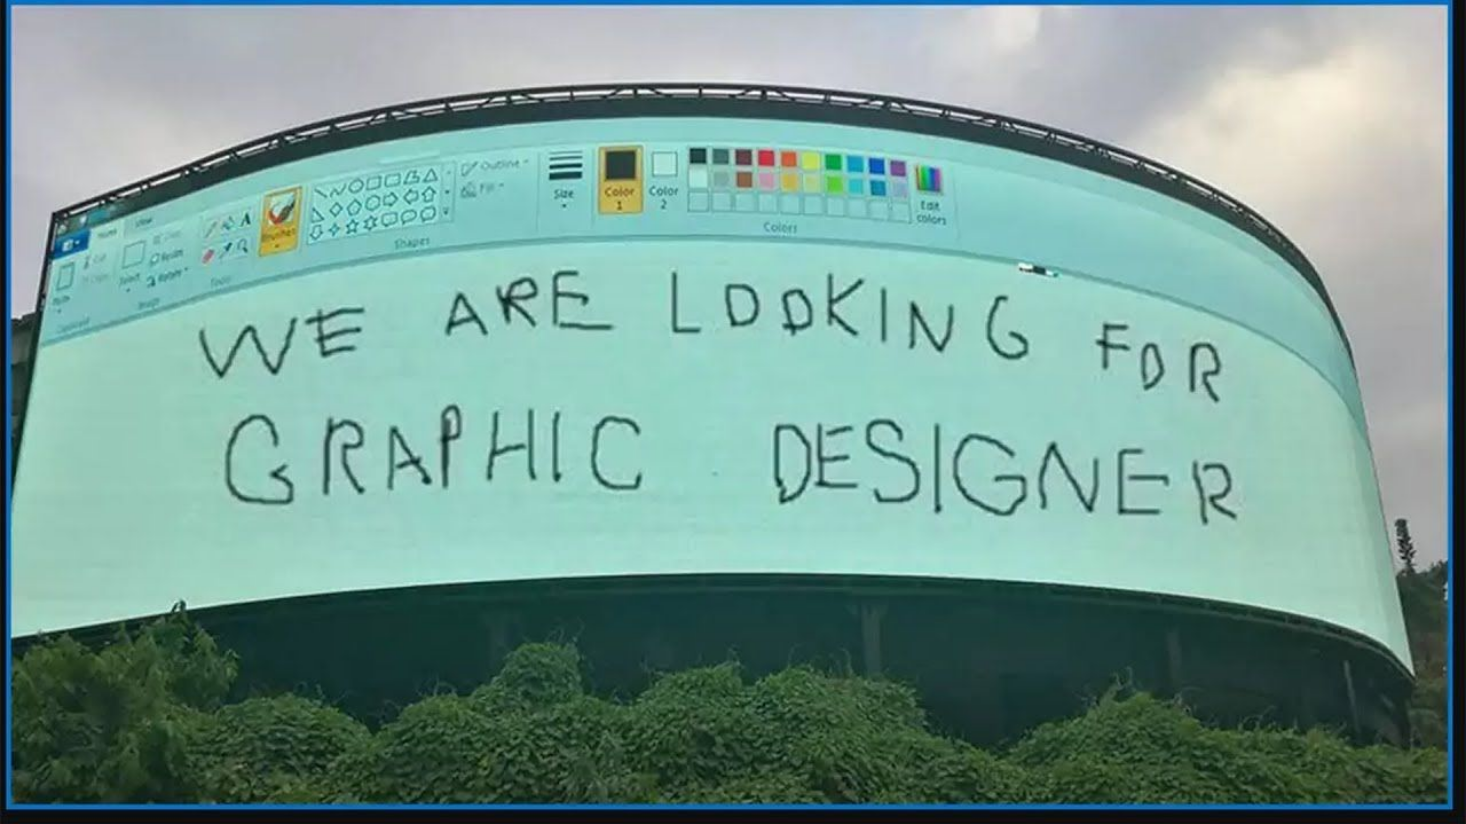 this comedian looking for a graphic designer